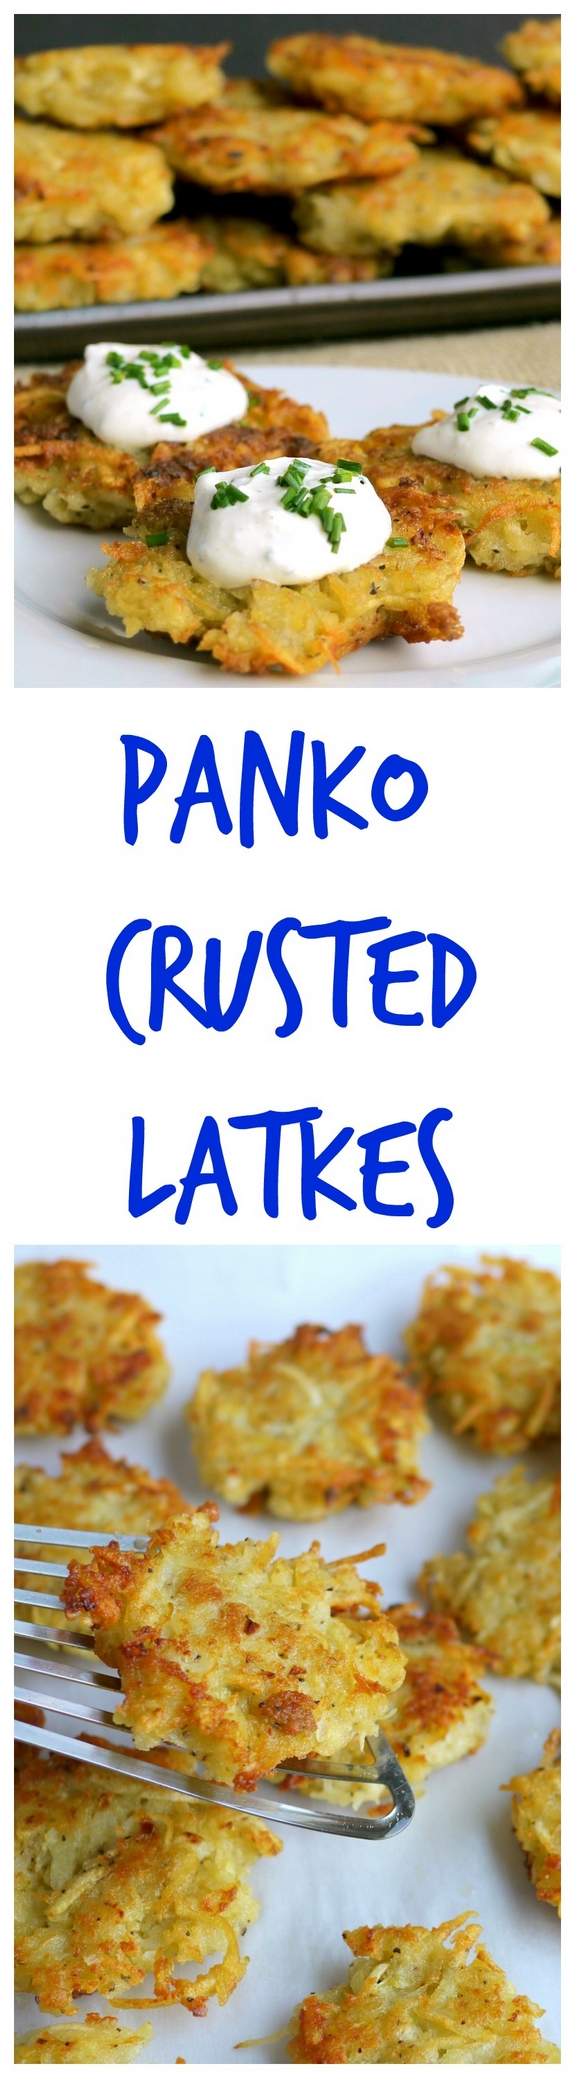 Panko Latkes with Horseradish Sour Cream via @cmpollak1